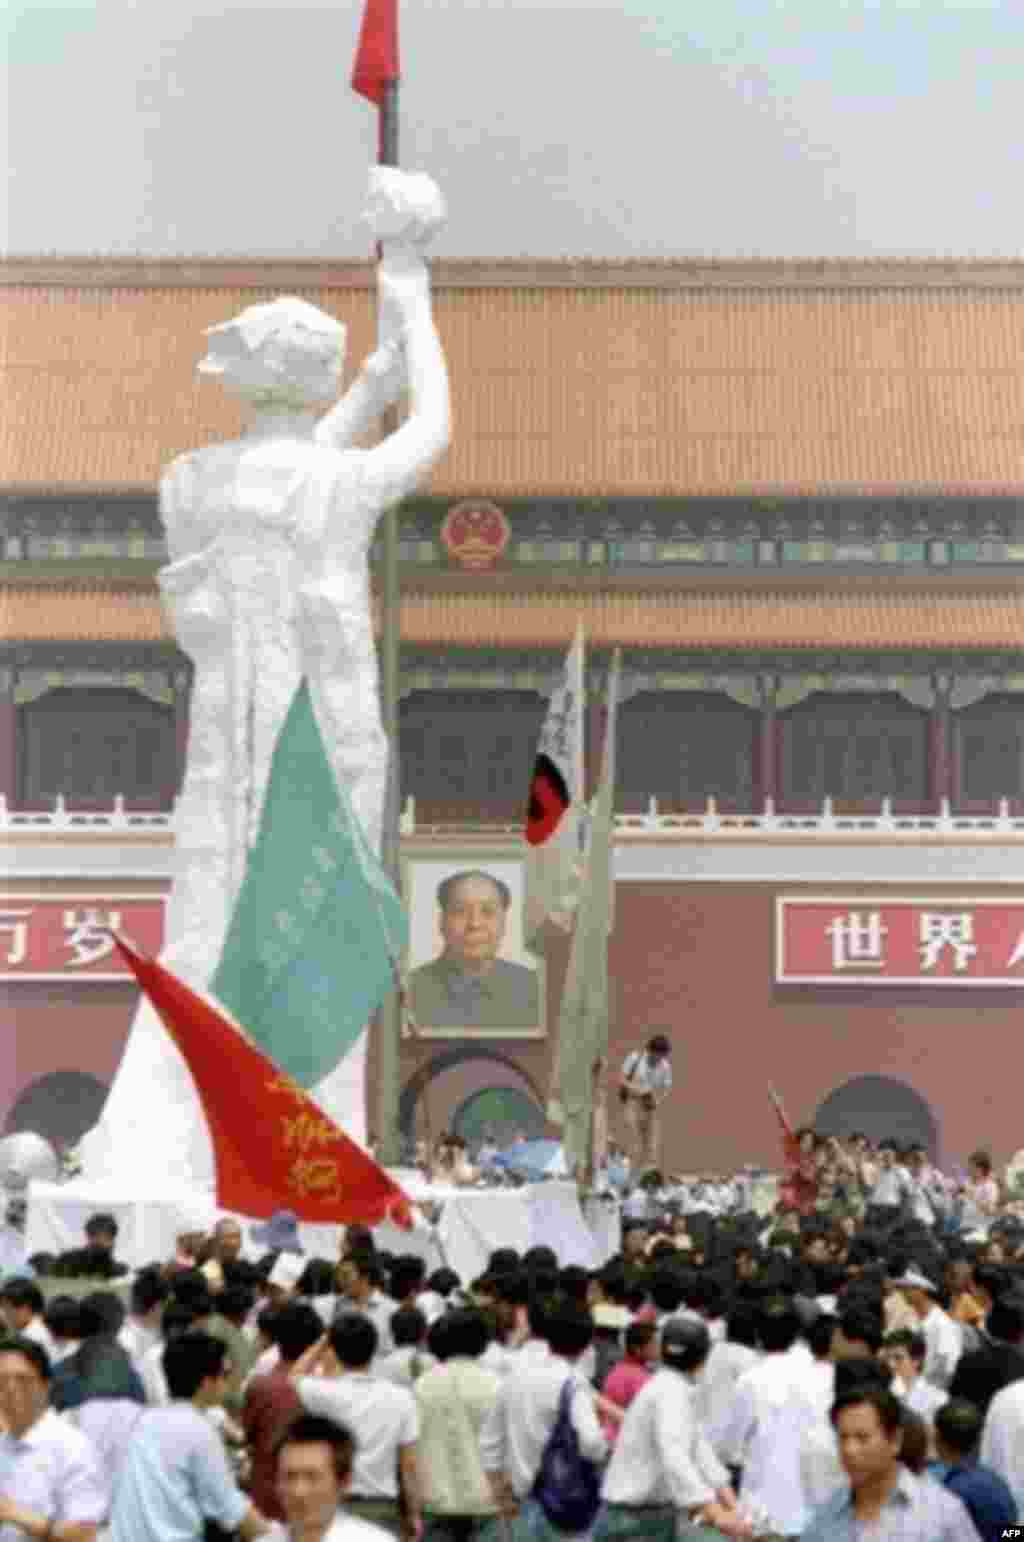 The Goddess of Freedom statue during Tiananmen Square protests in June 1989 - In April 1989, Chinese students began a pro-democracy demonstration in Beijing's central Tiananmen Square. On May 4, some 100,000 people joined the demonstration and week later hundreds of demonstrating students launched a hunger strike. Protests in other cities prompted the government to send in troops on June 4. At least several hundred protesters were killed in the crackdown.